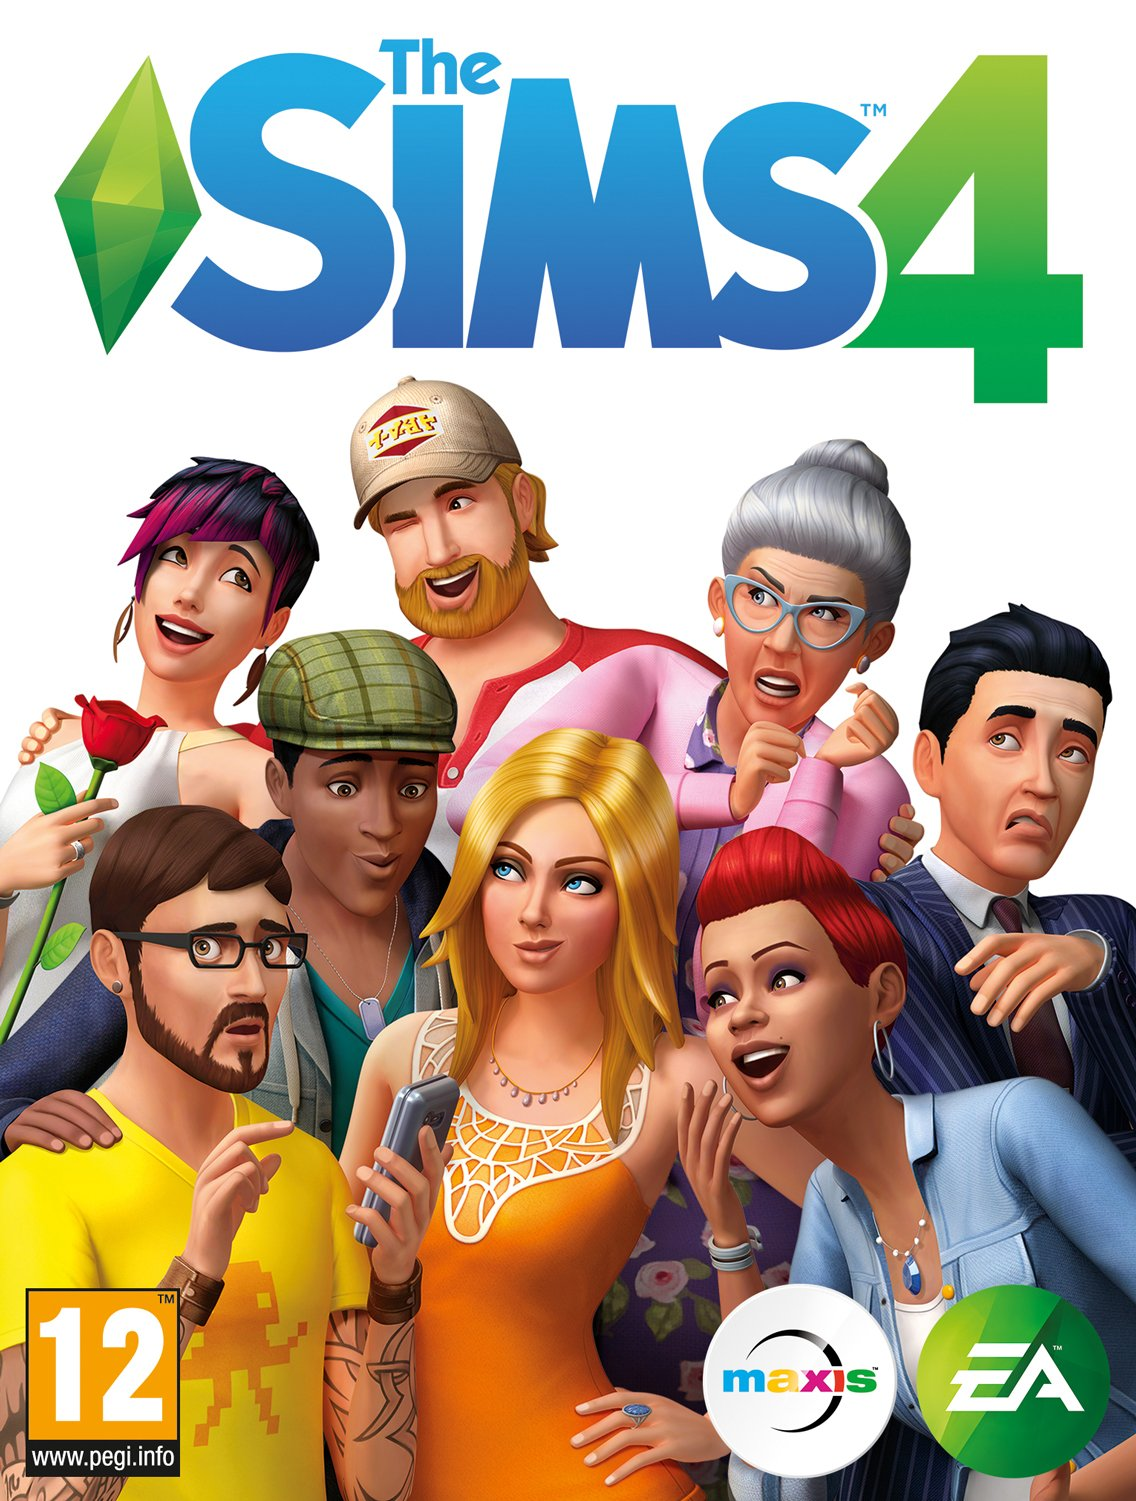 The Sims 4: Deluxe Edition [v 1.83.77.1020] (2014) PC  RePack от xatab